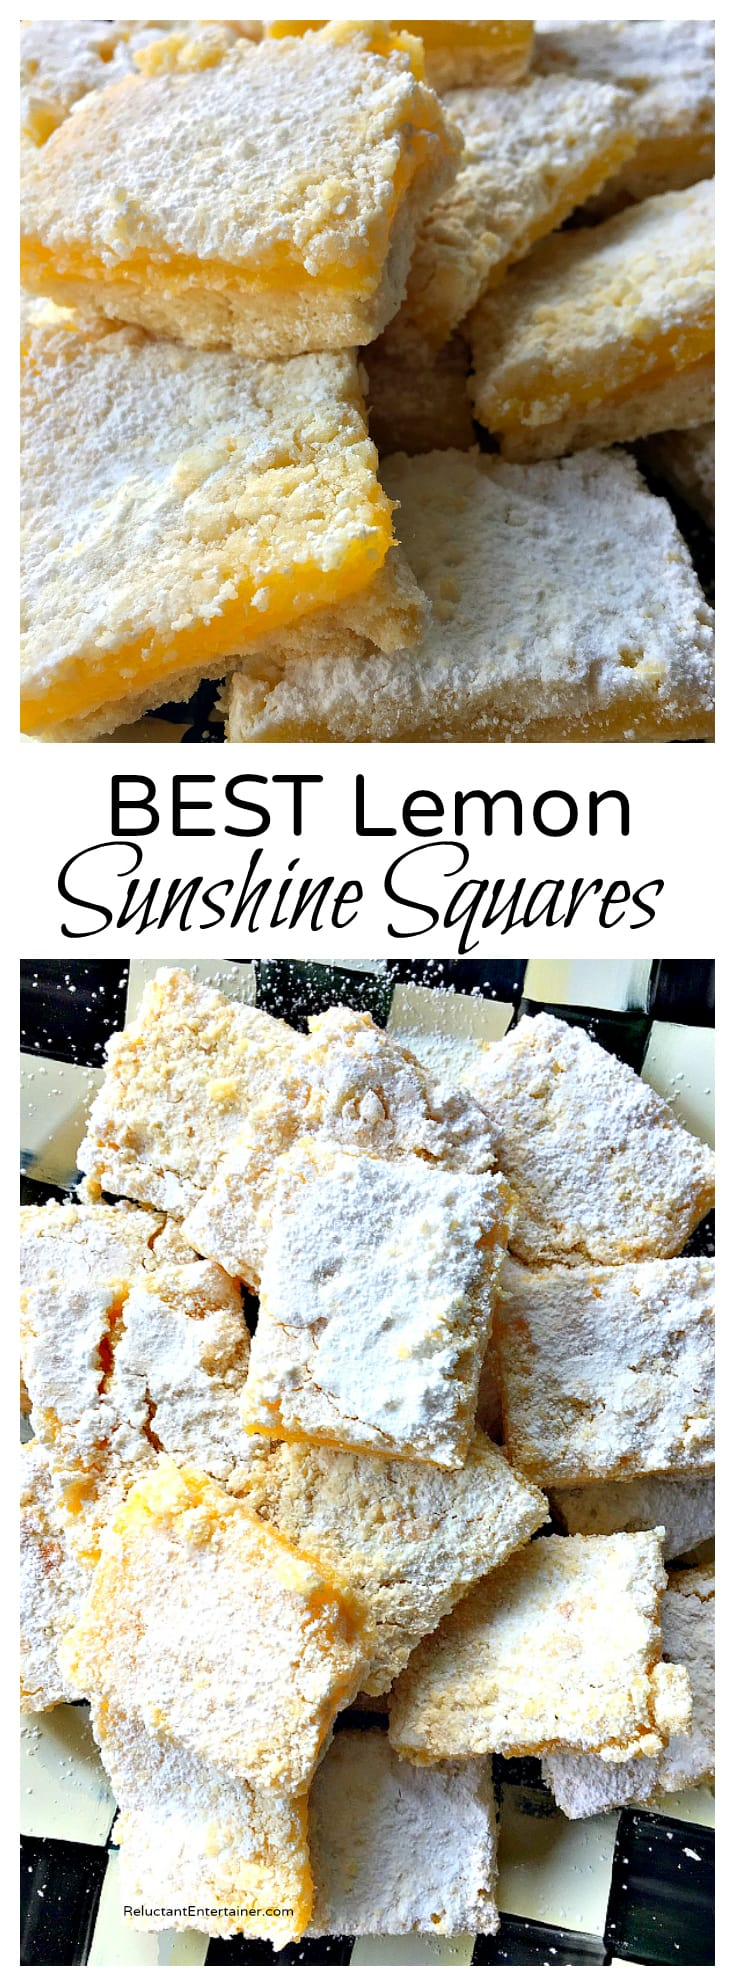 BEST Lemon Sunshine Squares Recipe